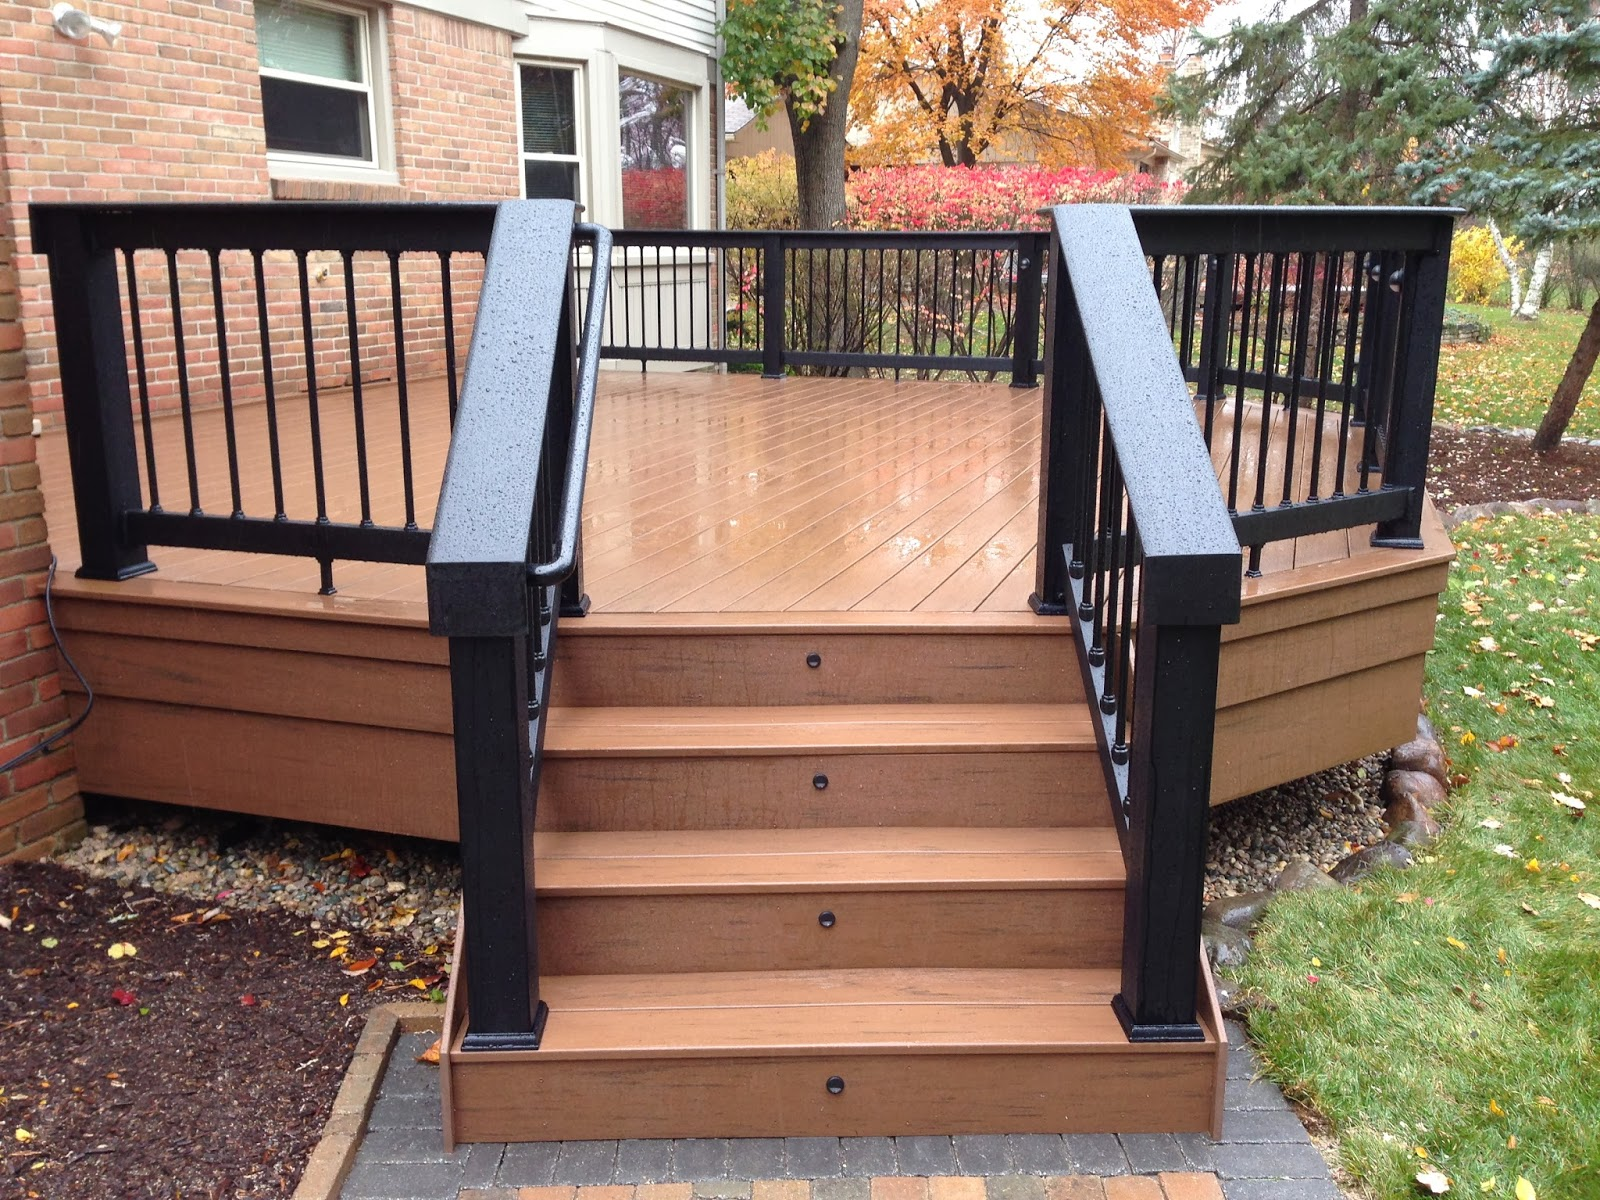 Front porch railing ideas - Outdoor Living Deck Designs From 2013 Adding Flair To A Square Deck